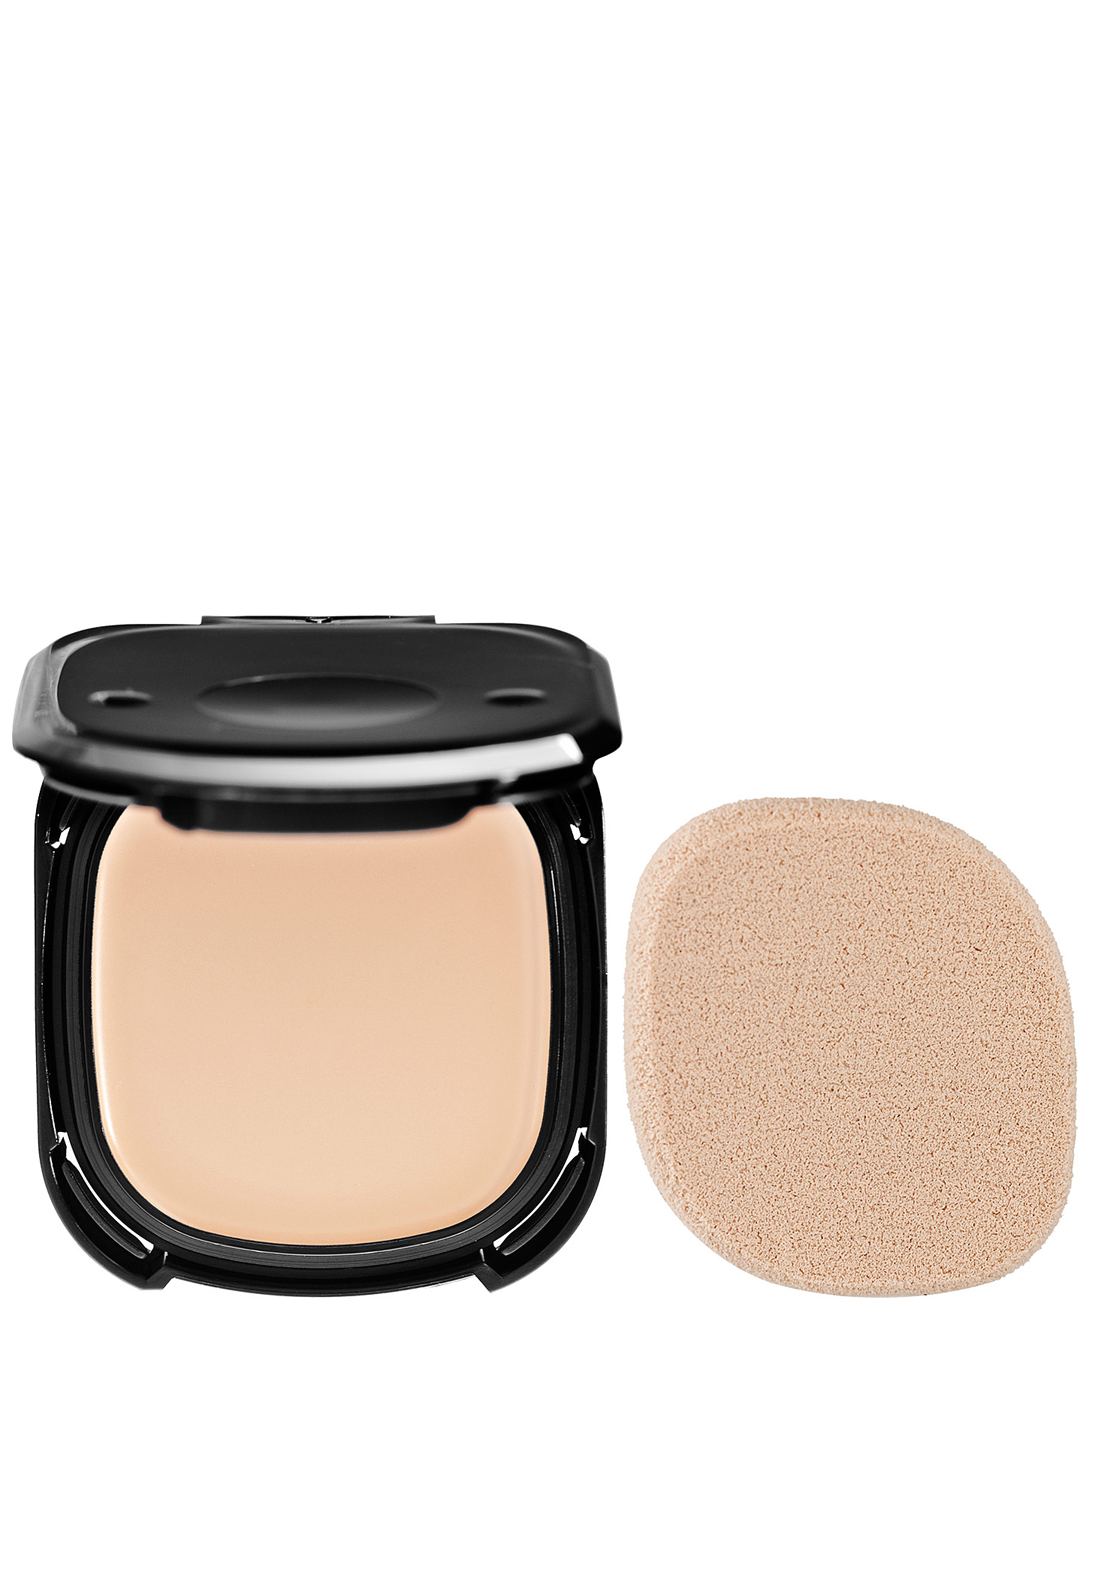 Shiseido Advanced Hydro-Liquid Compact (Refill) with SPF10, Natural Light Ivory I20